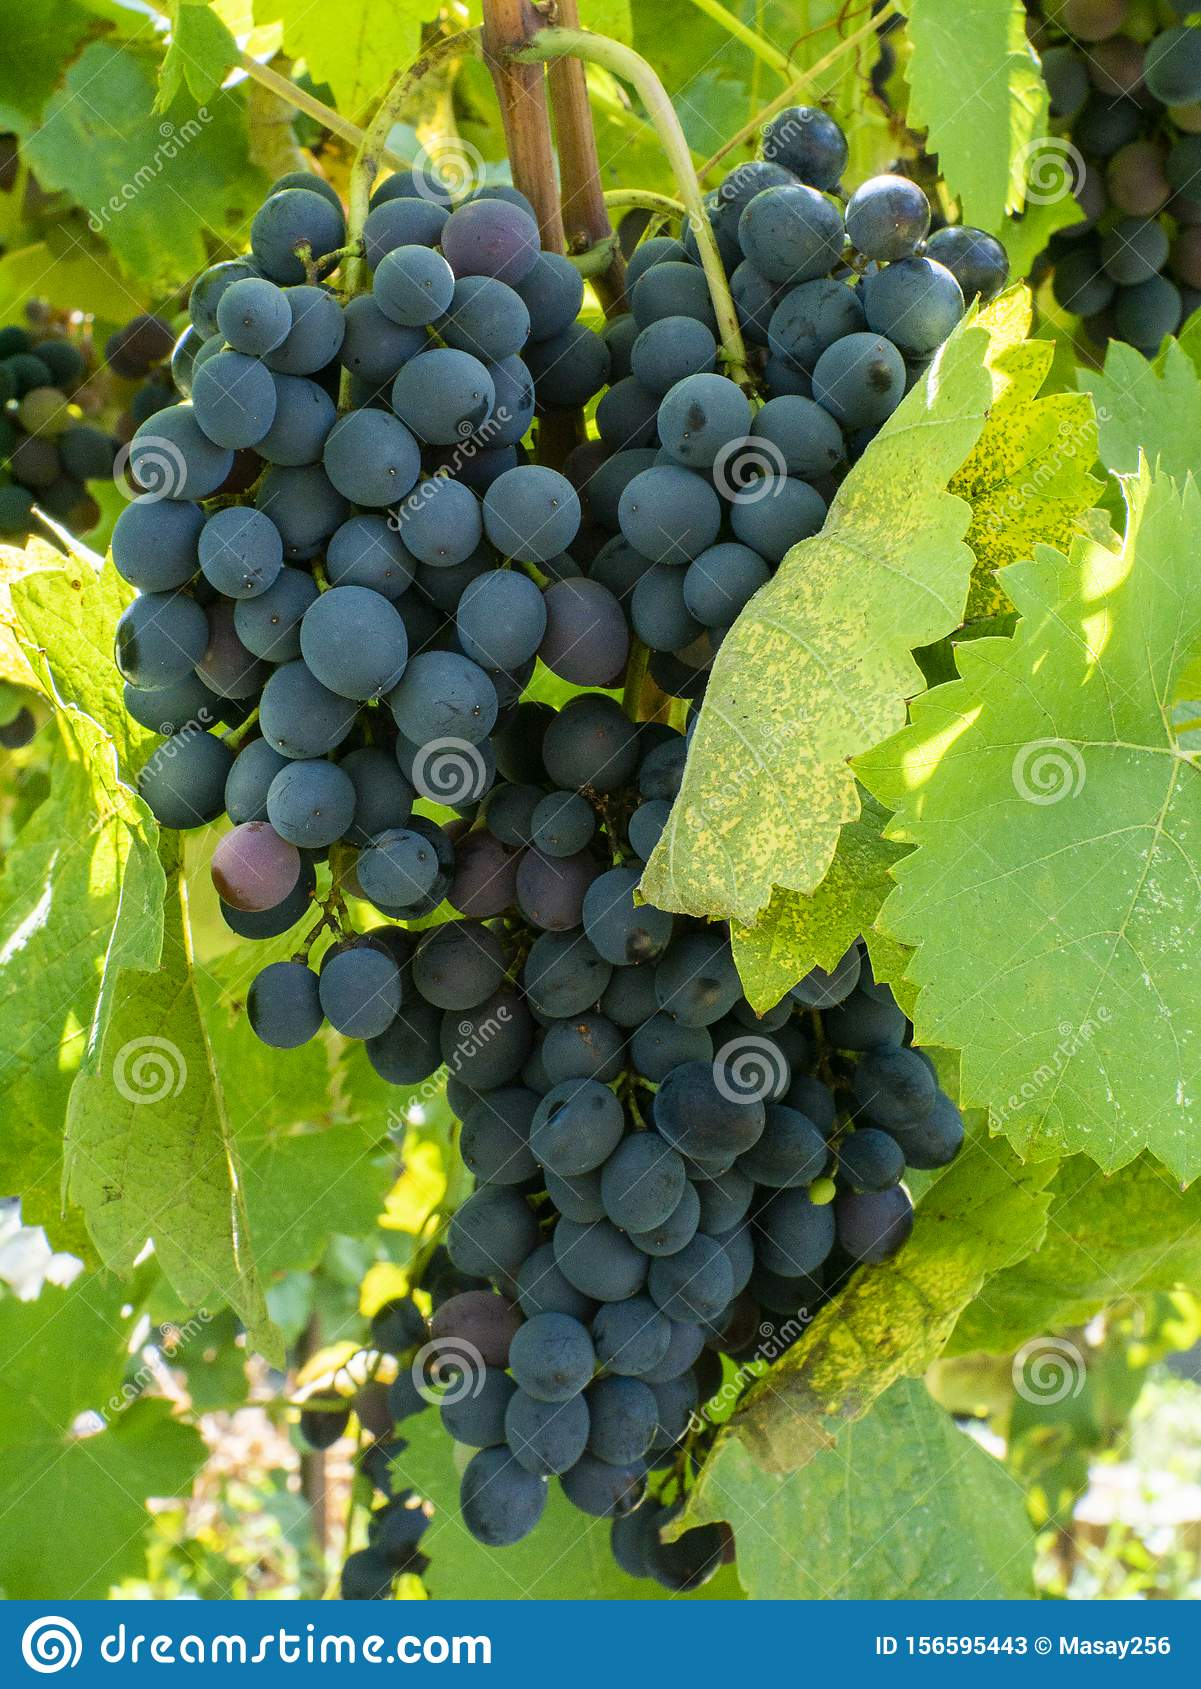 Bunches of grapes in a vineyard in a rural garden